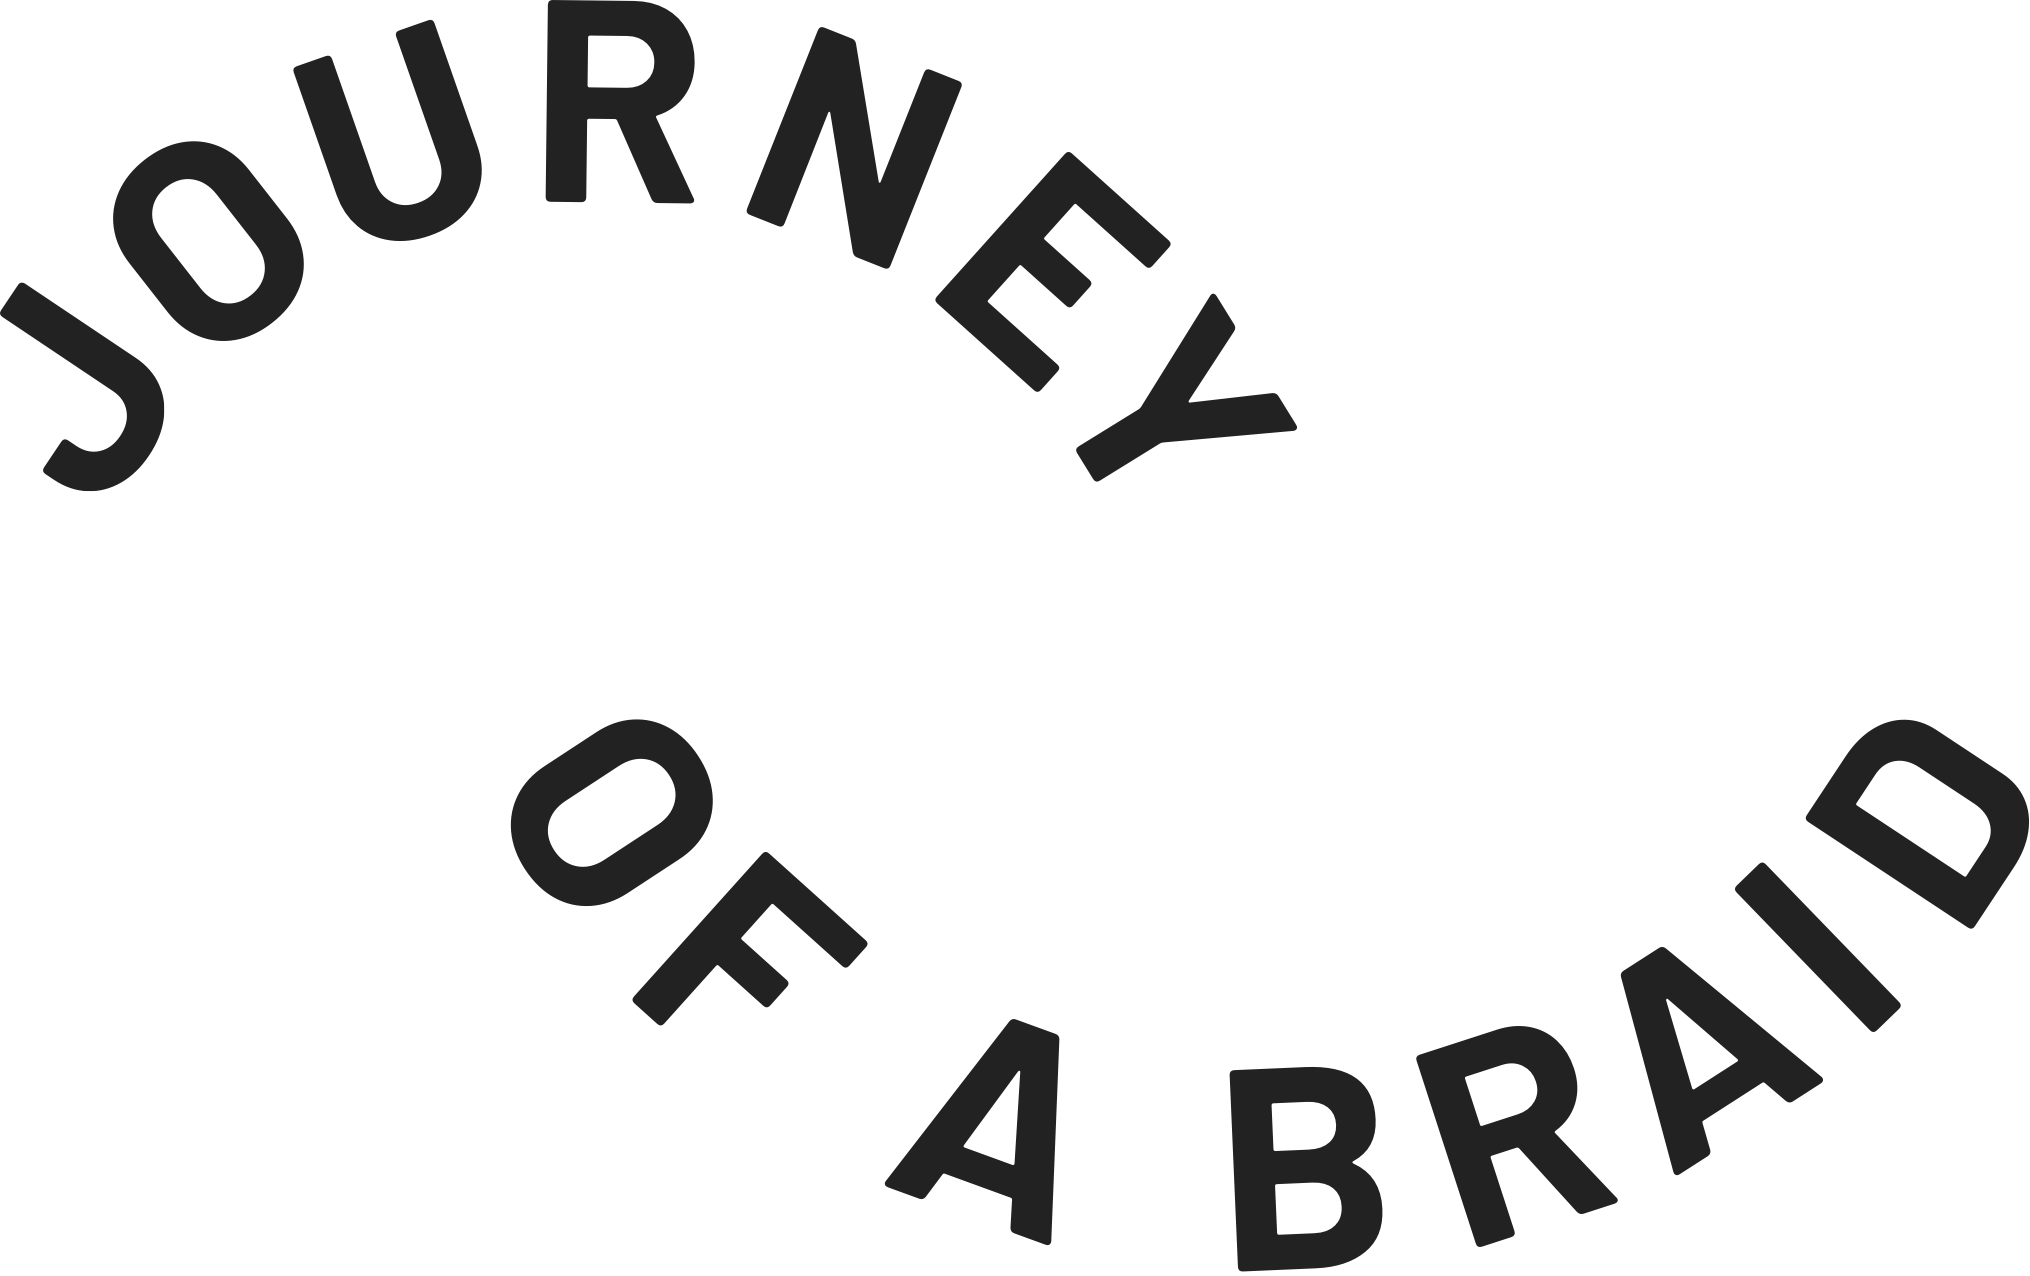 Journey of a Braid Logotype